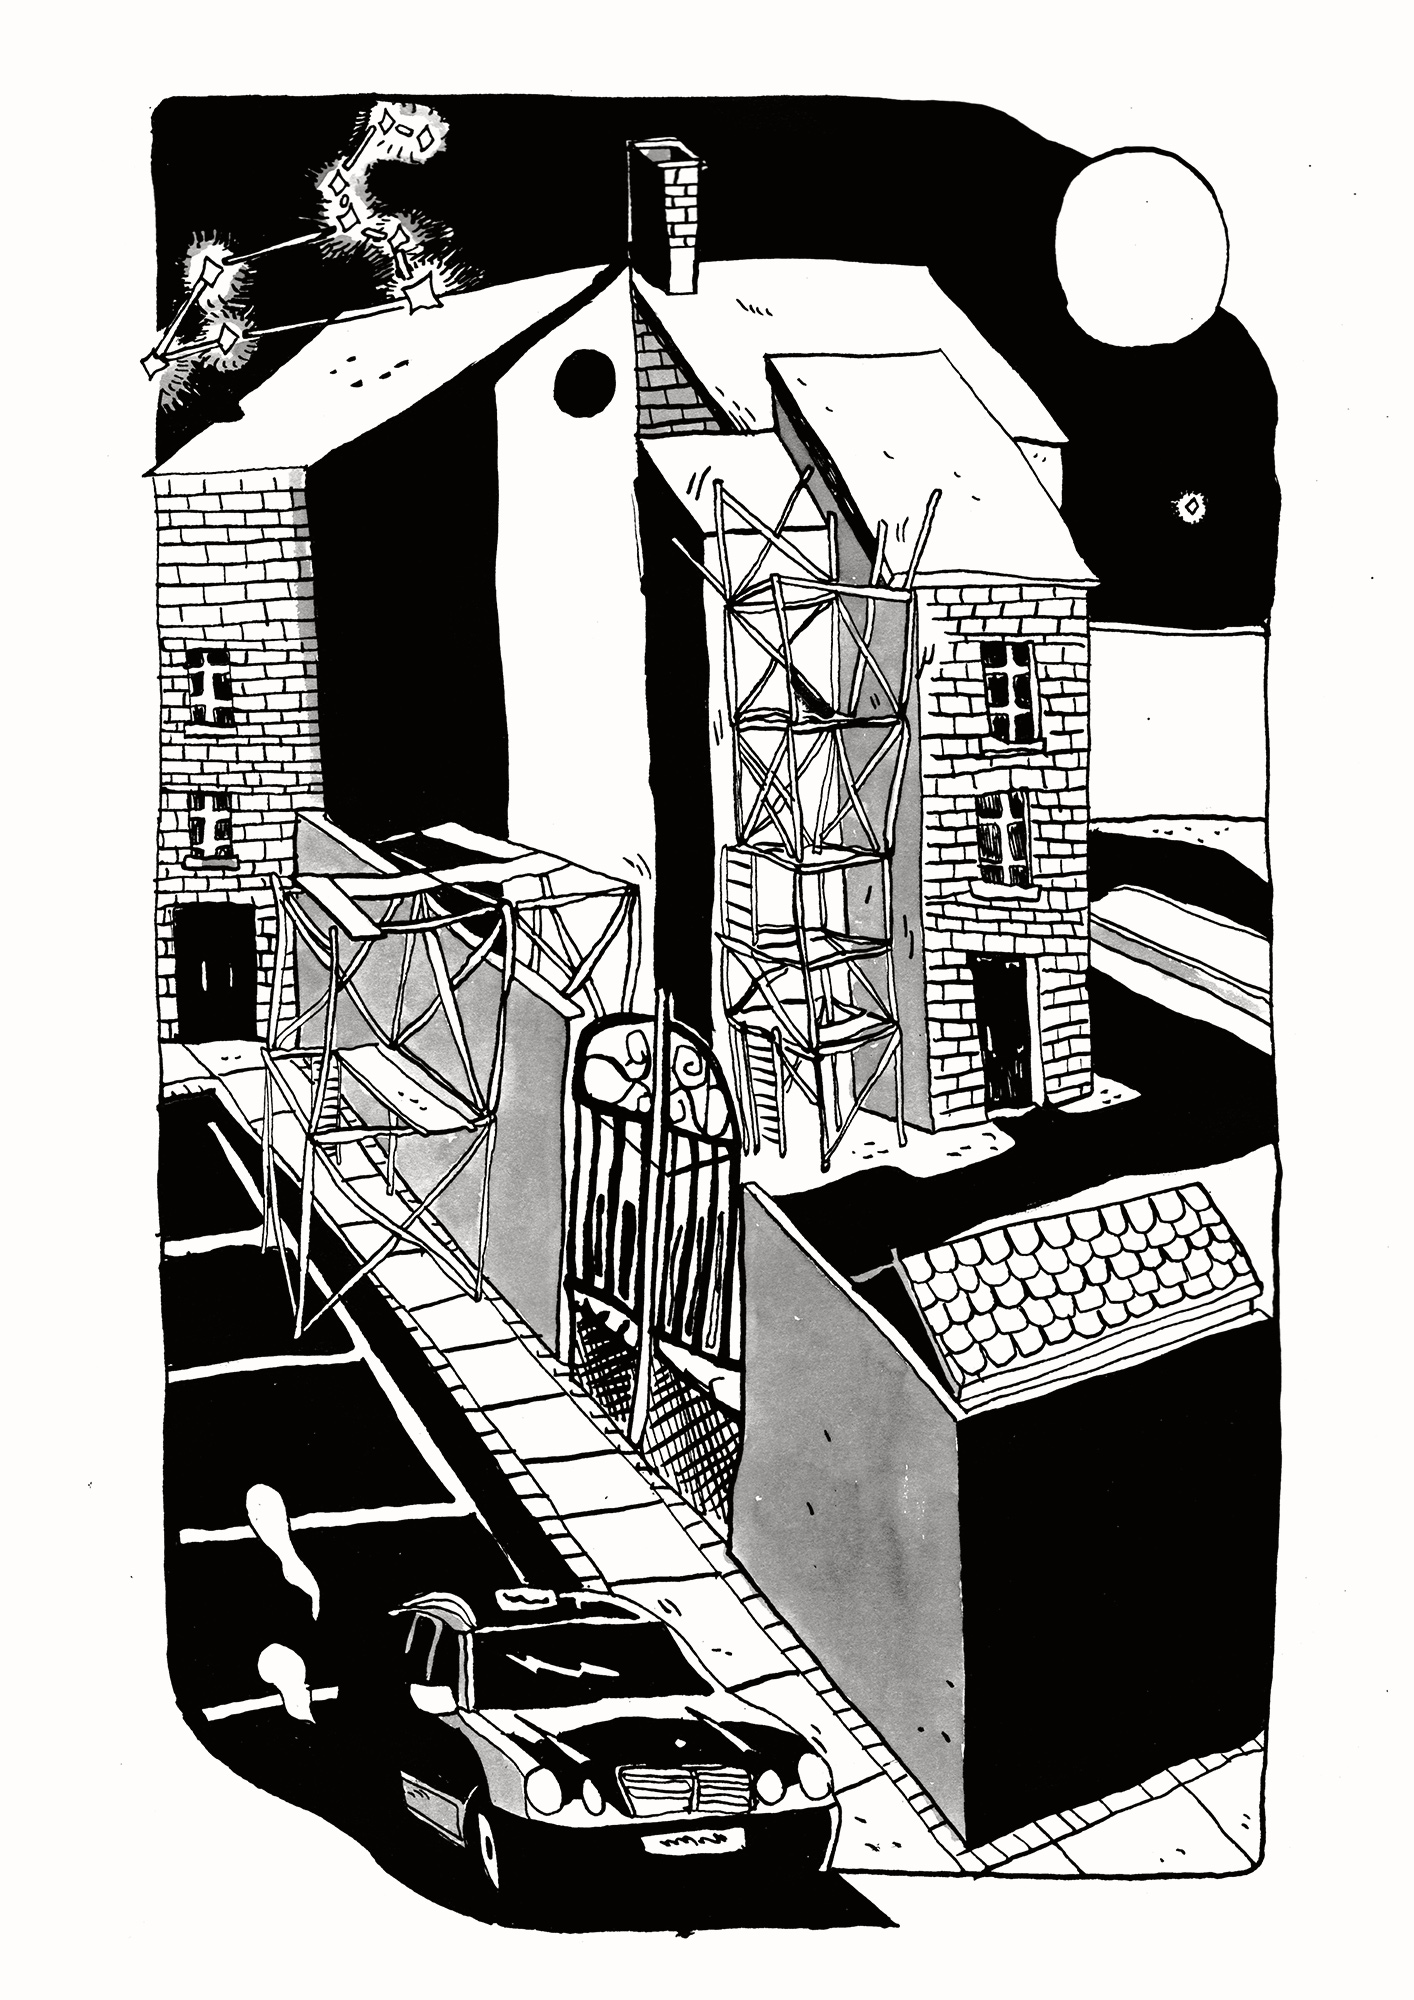 posters-prints, giclee-print, graphical, illustrative, monochrome, architecture, cartoons, movement, transportation, black, white, ink, paper, black-and-white, cars, contemporary-art, copenhagen, danish, design, modern, modern-art, nordic, posters, prints, scandinavien, time, vehicles, Buy original high quality art. Paintings, drawings, limited edition prints & posters by talented artists.